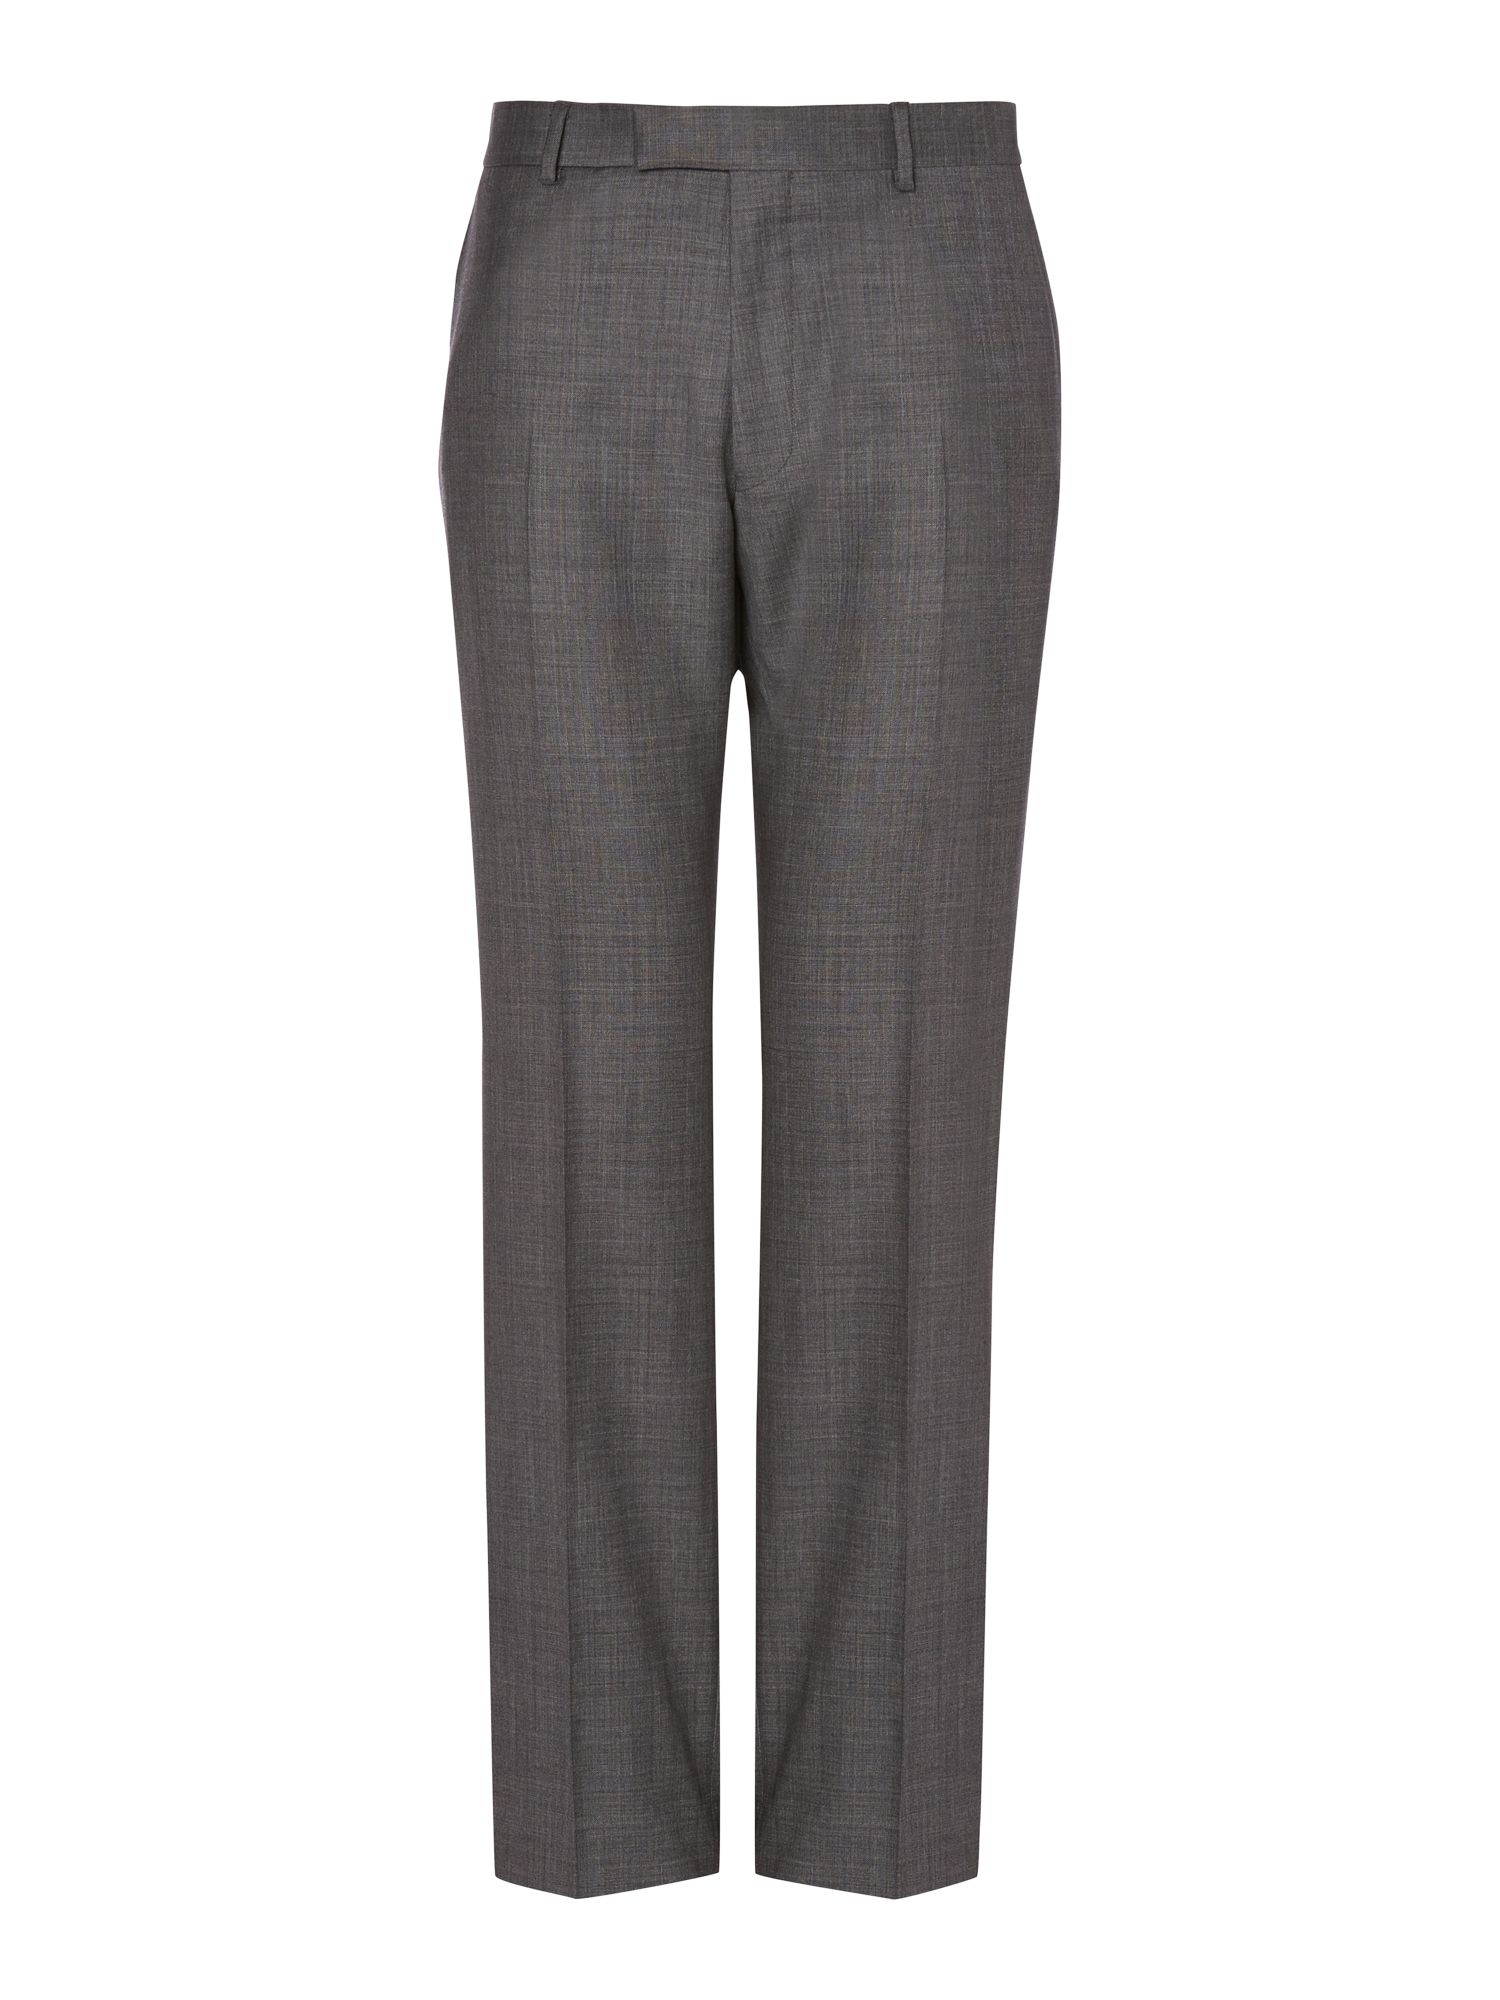 Melange Sharkskin Trouser